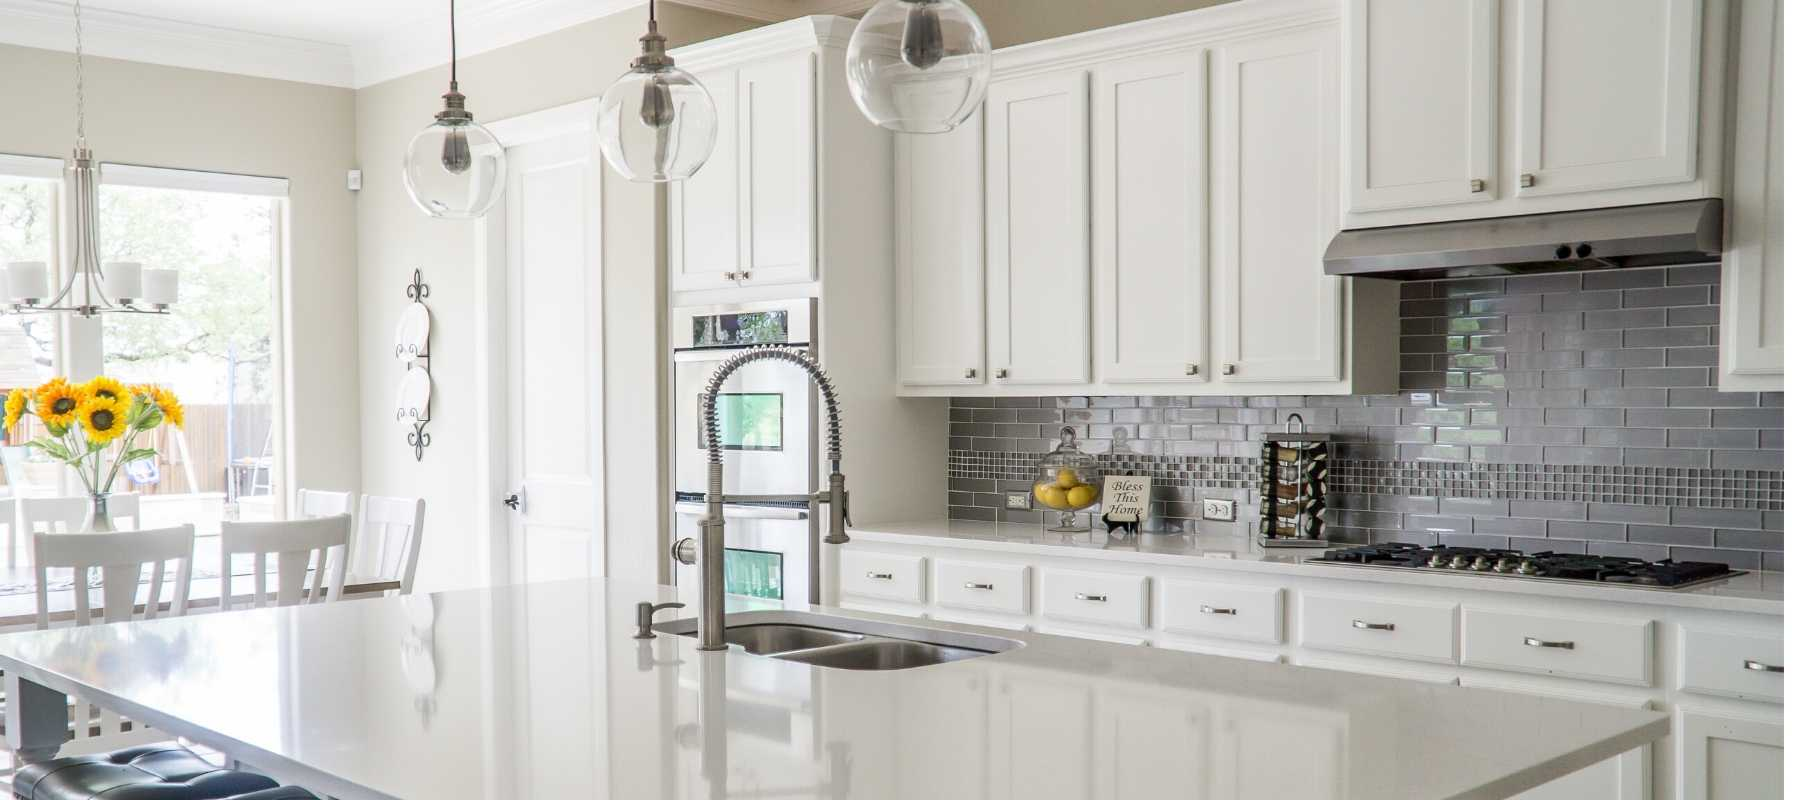 White kitchen with glass hanging pendants